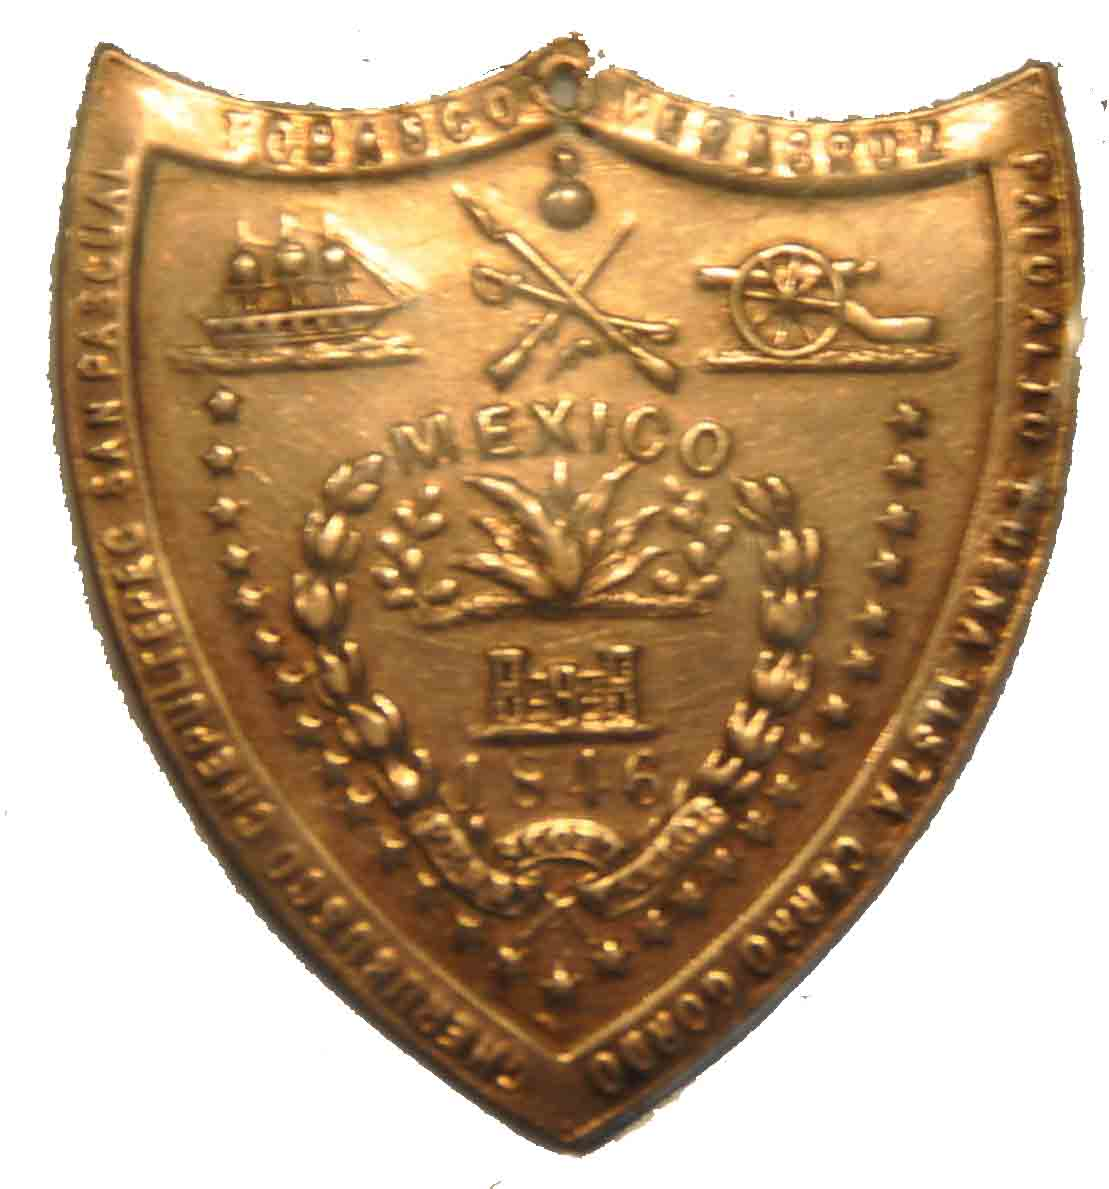 Mexican War Badge for Snellen M. Johnson